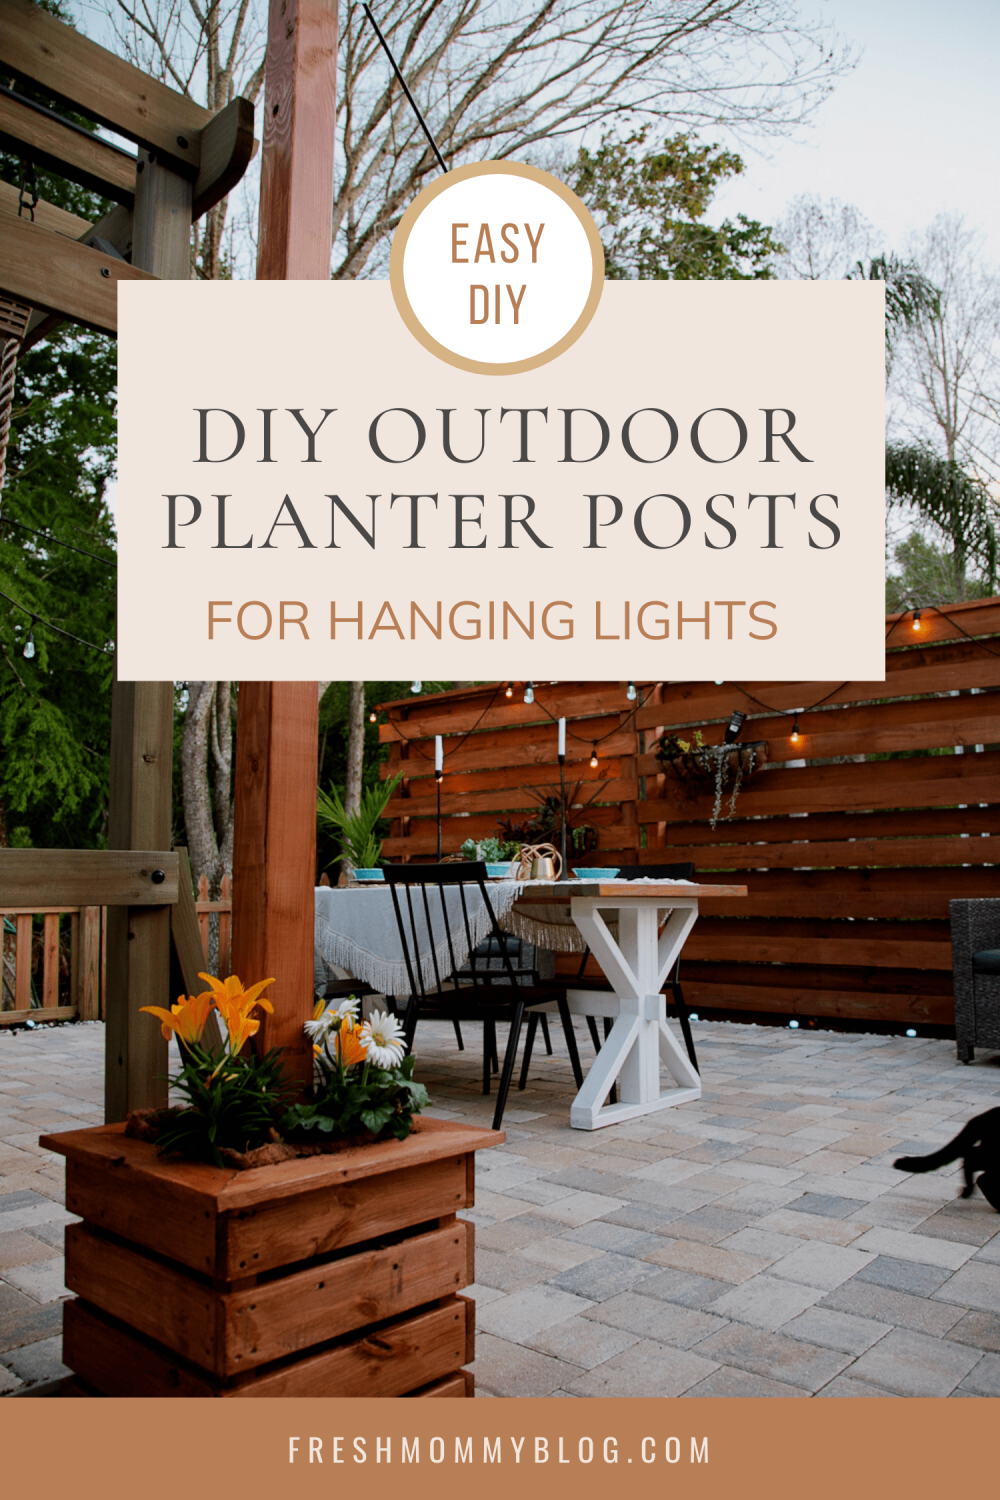 Home Update: DIY Outdoor Planter Box for Hanging String Lighting. These DIY outdoor planter flower boxes are a modern way to hang string lighting over a deck or patio and really update the look and feel of the great outdoors for all of your fun backyard plans! Perfect for a weekend warrior project from Top Florida Lifestyle Blogger Tabitha Blue of Fresh Mommy Blog.